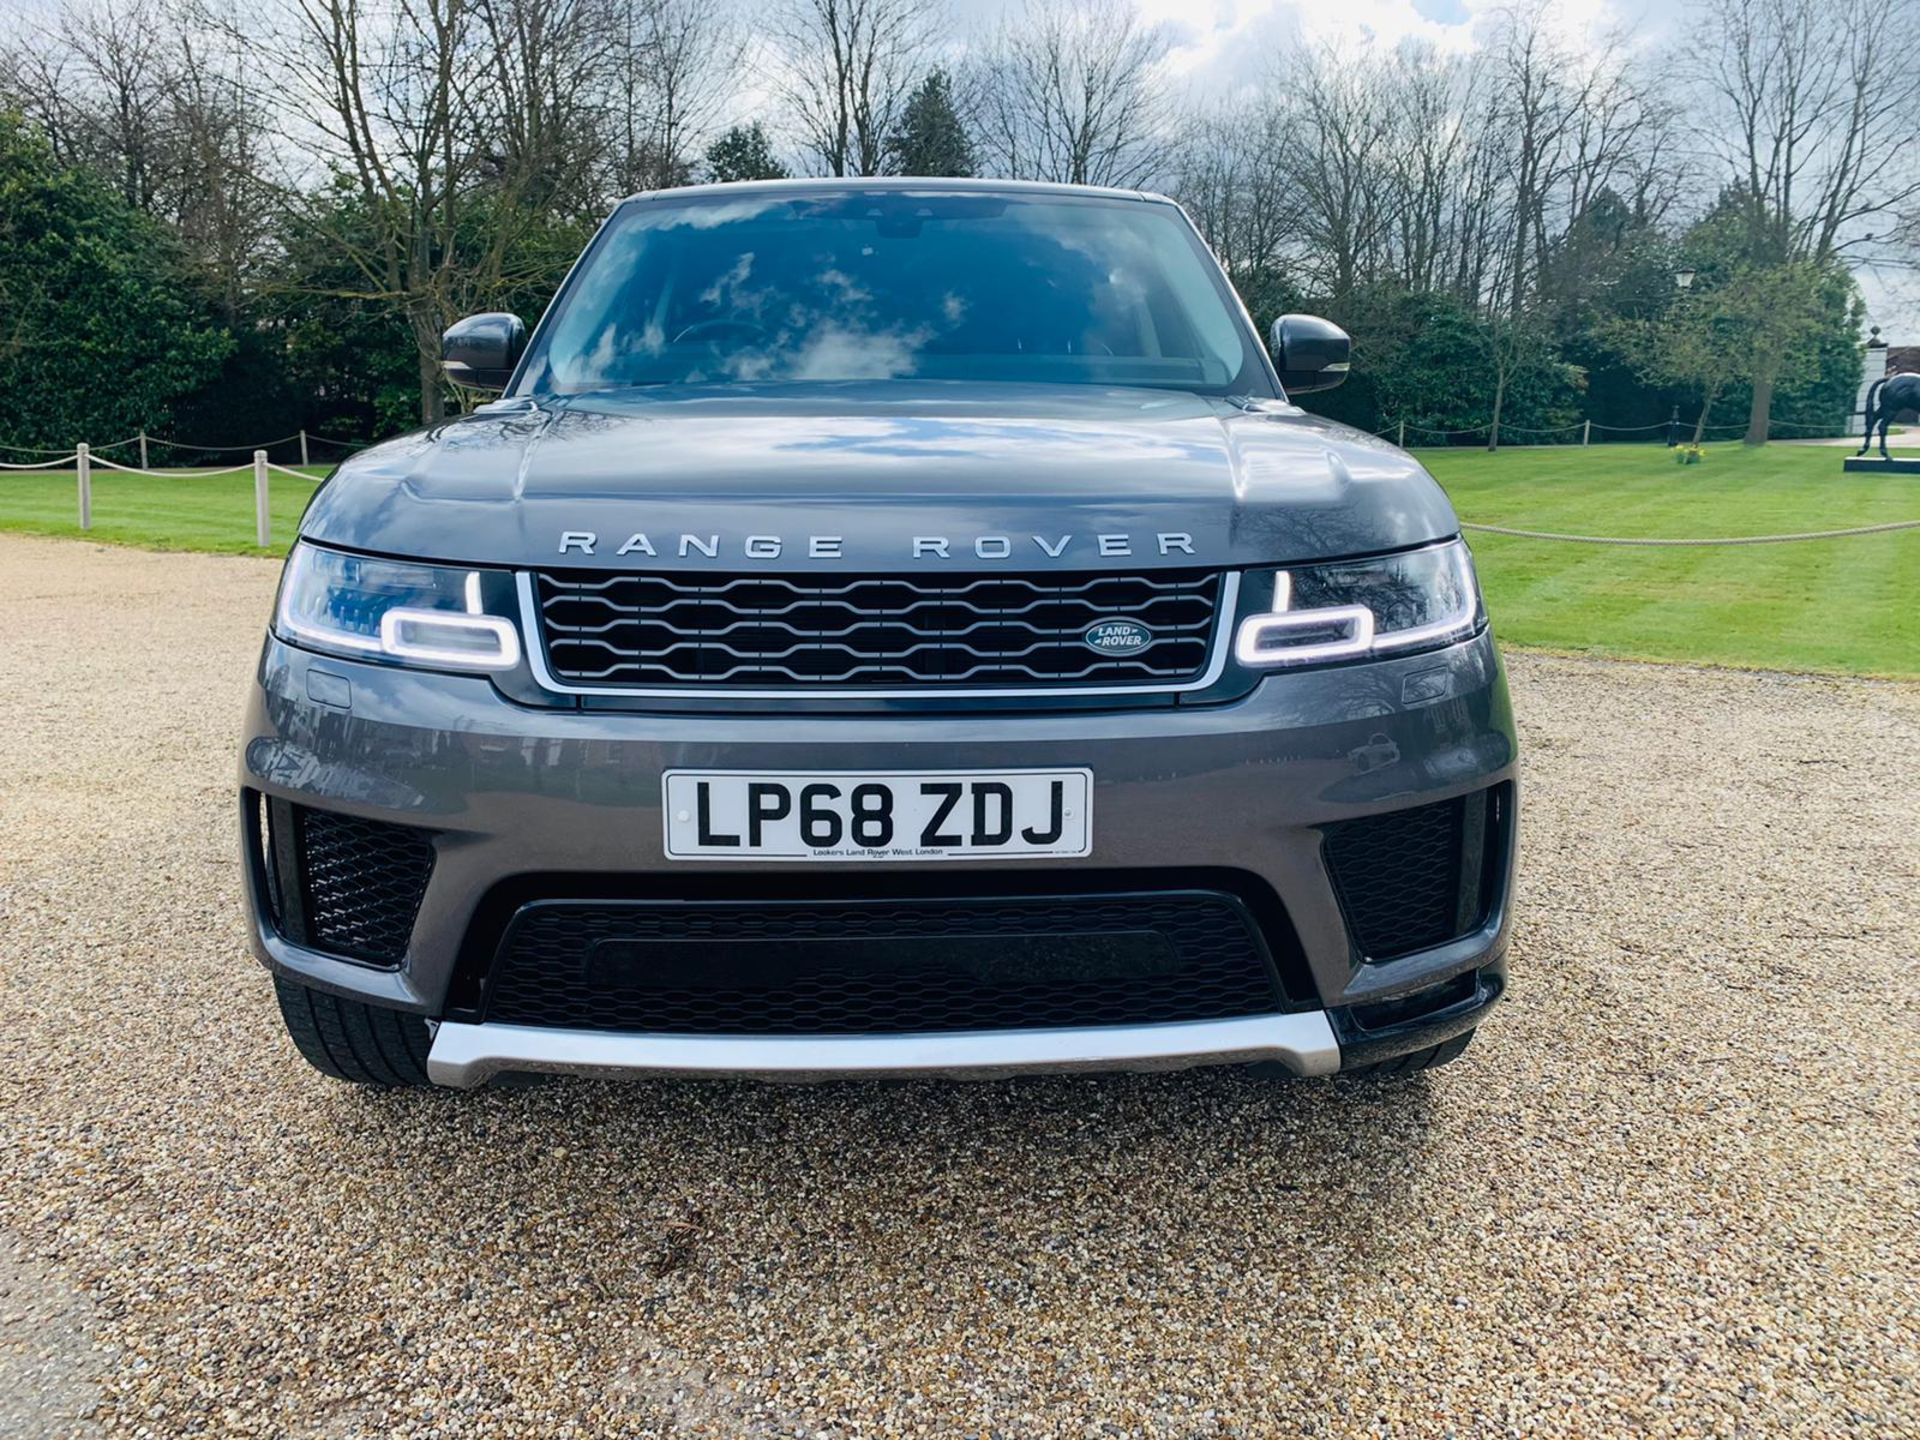 (RESERVE MET) Range Rover Sport 3.0 SDV6 HSE Auto - 2019 - 1 Keeper From New - Virtual Cockpit - - Image 6 of 42